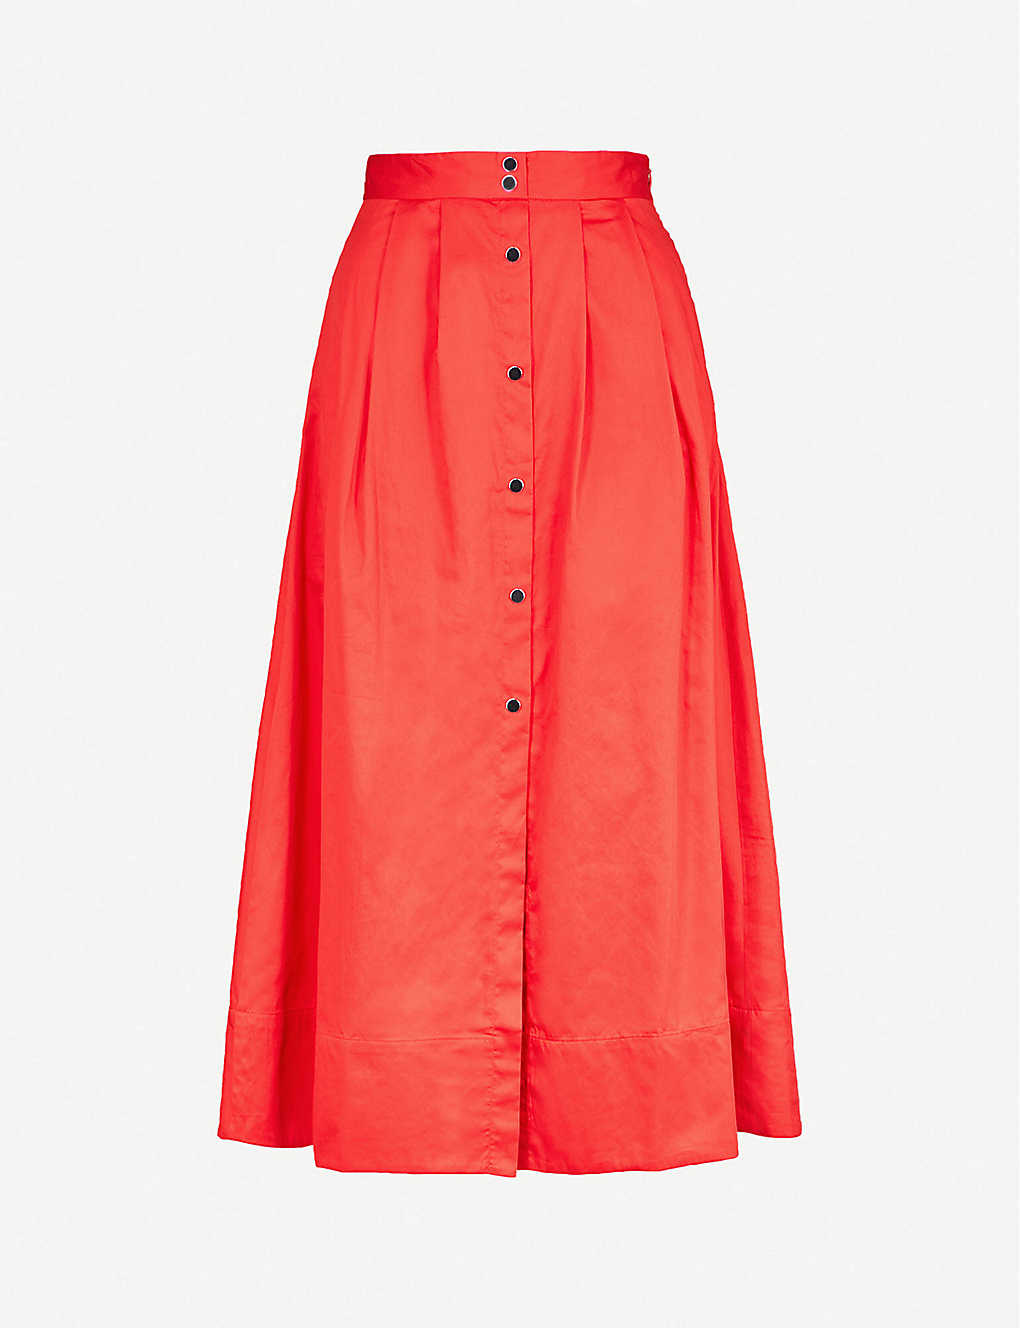 ac51471d4f0d2 MAJE - Jupalo cotton midi skirt | Selfridges.com